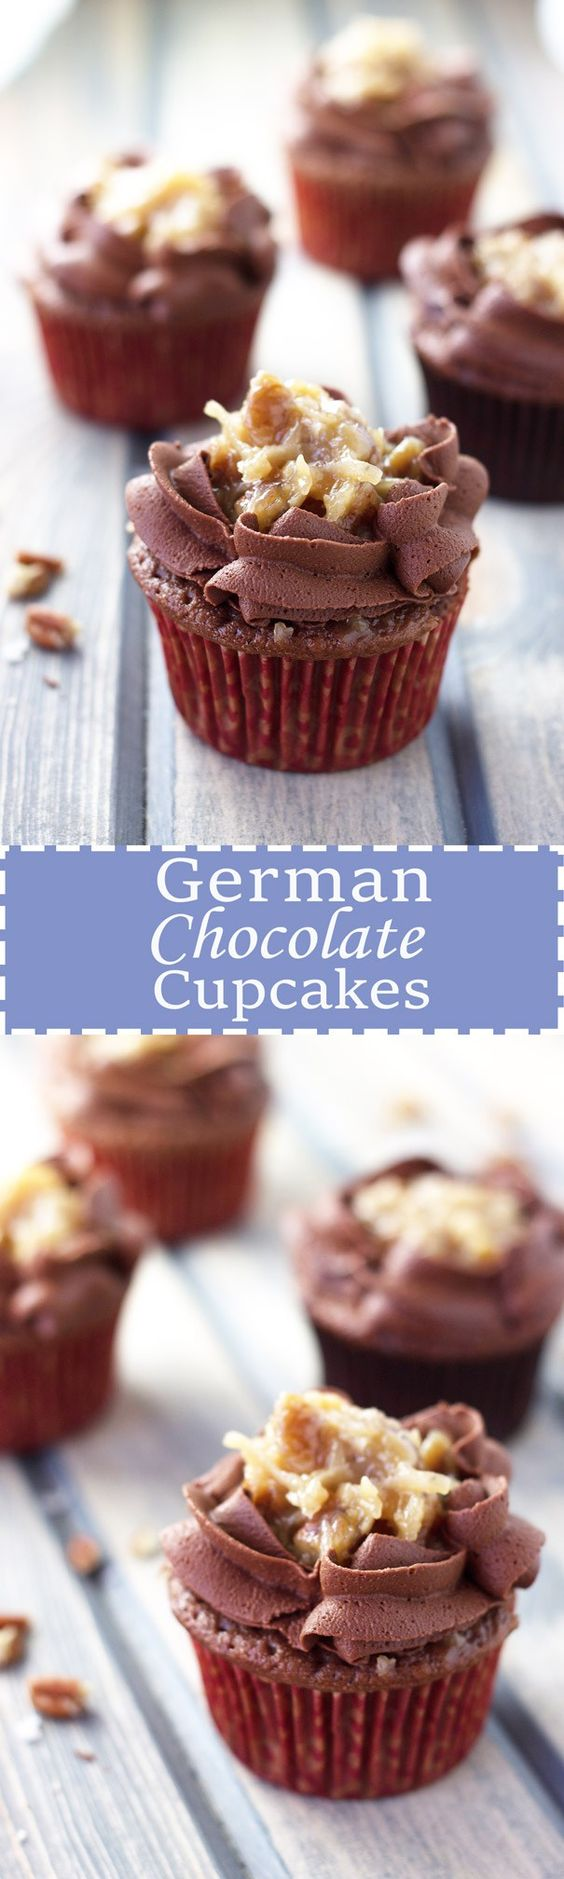 German Chocolate Cupcakes- A german chocolate cupcake topped with a caramel pecan and a sweet chocolate frosting! | Countryside Cravings